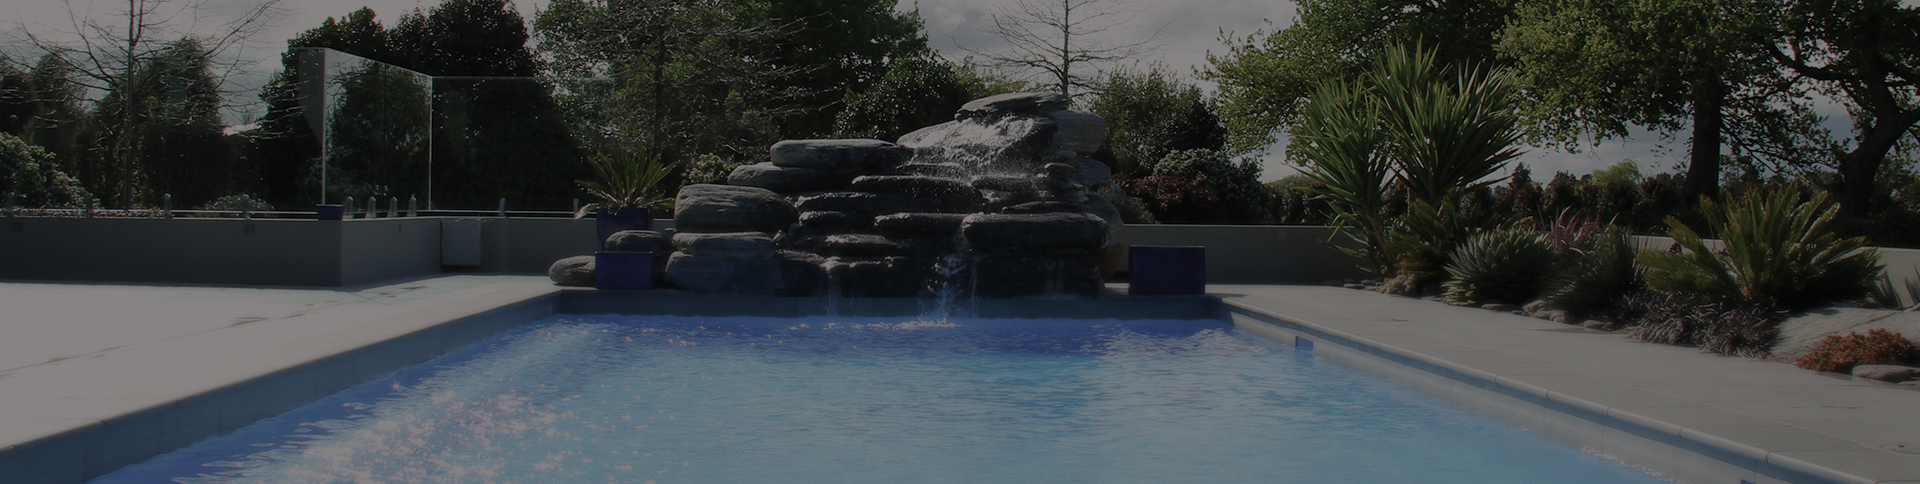 Waikato pool builders custom pools inground pools for Pool design hamilton